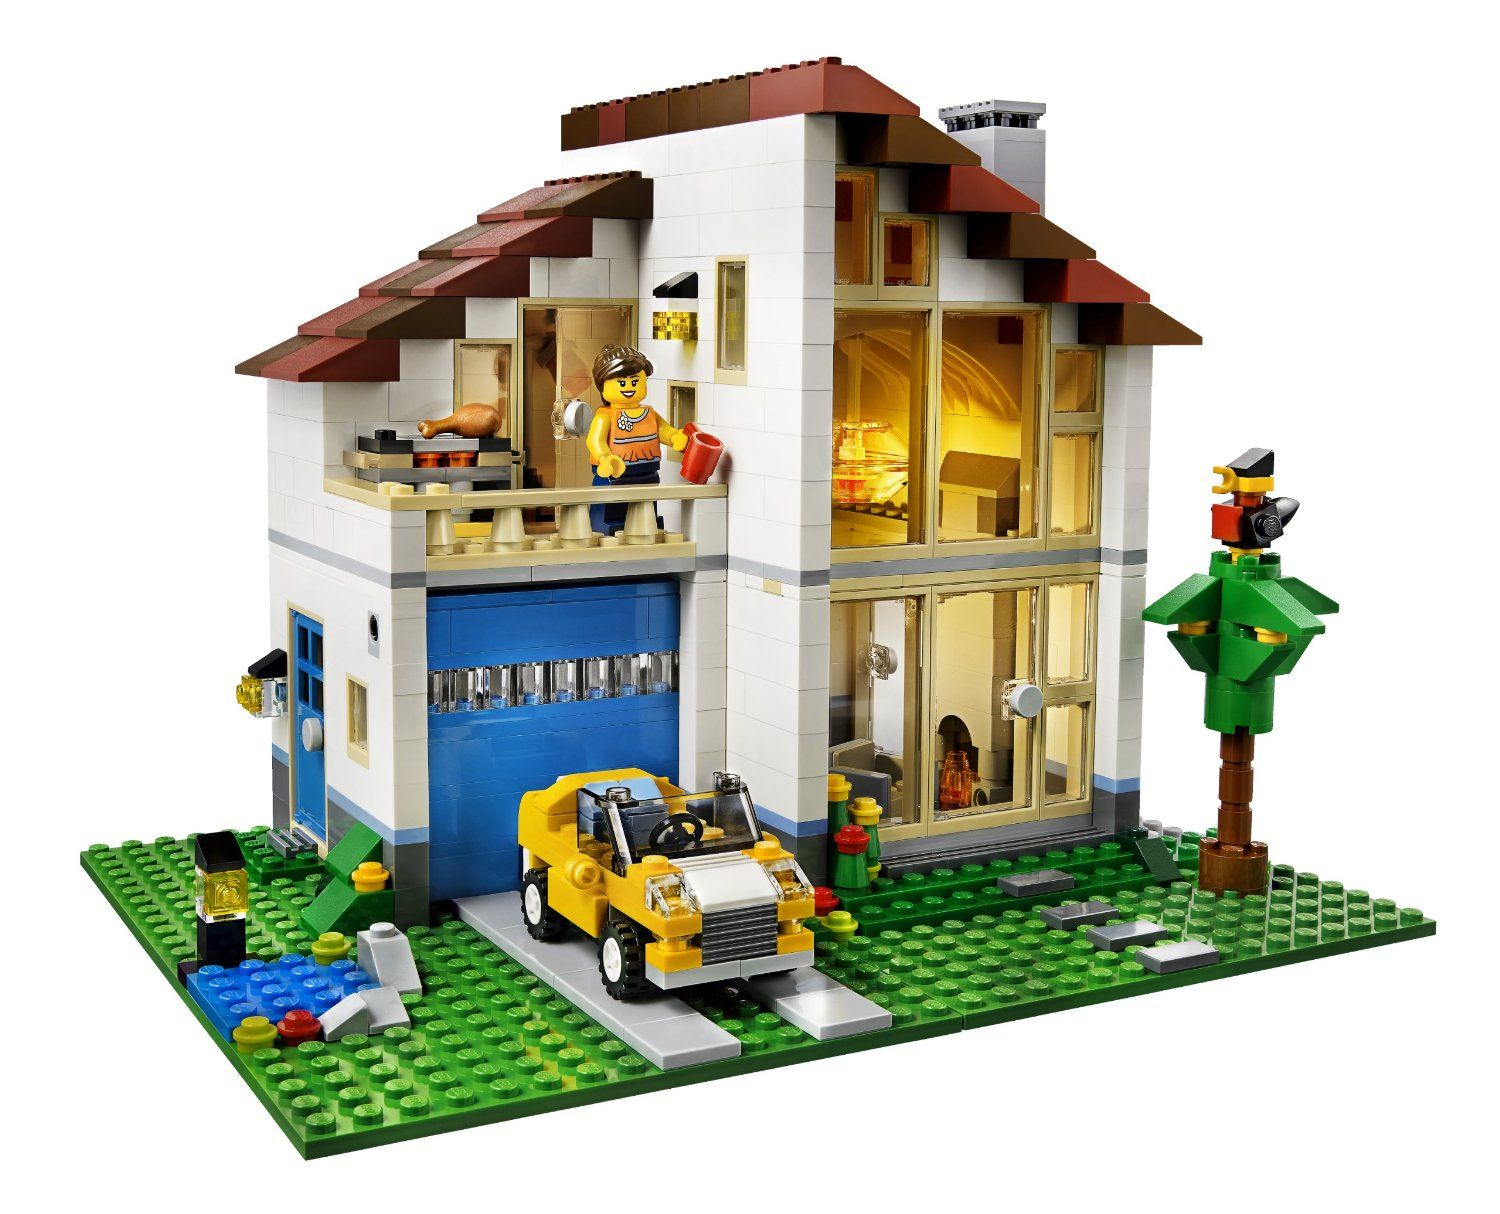 Lego creator 3 in 1 home playsets are awesome lego house for Modele maison lego classic